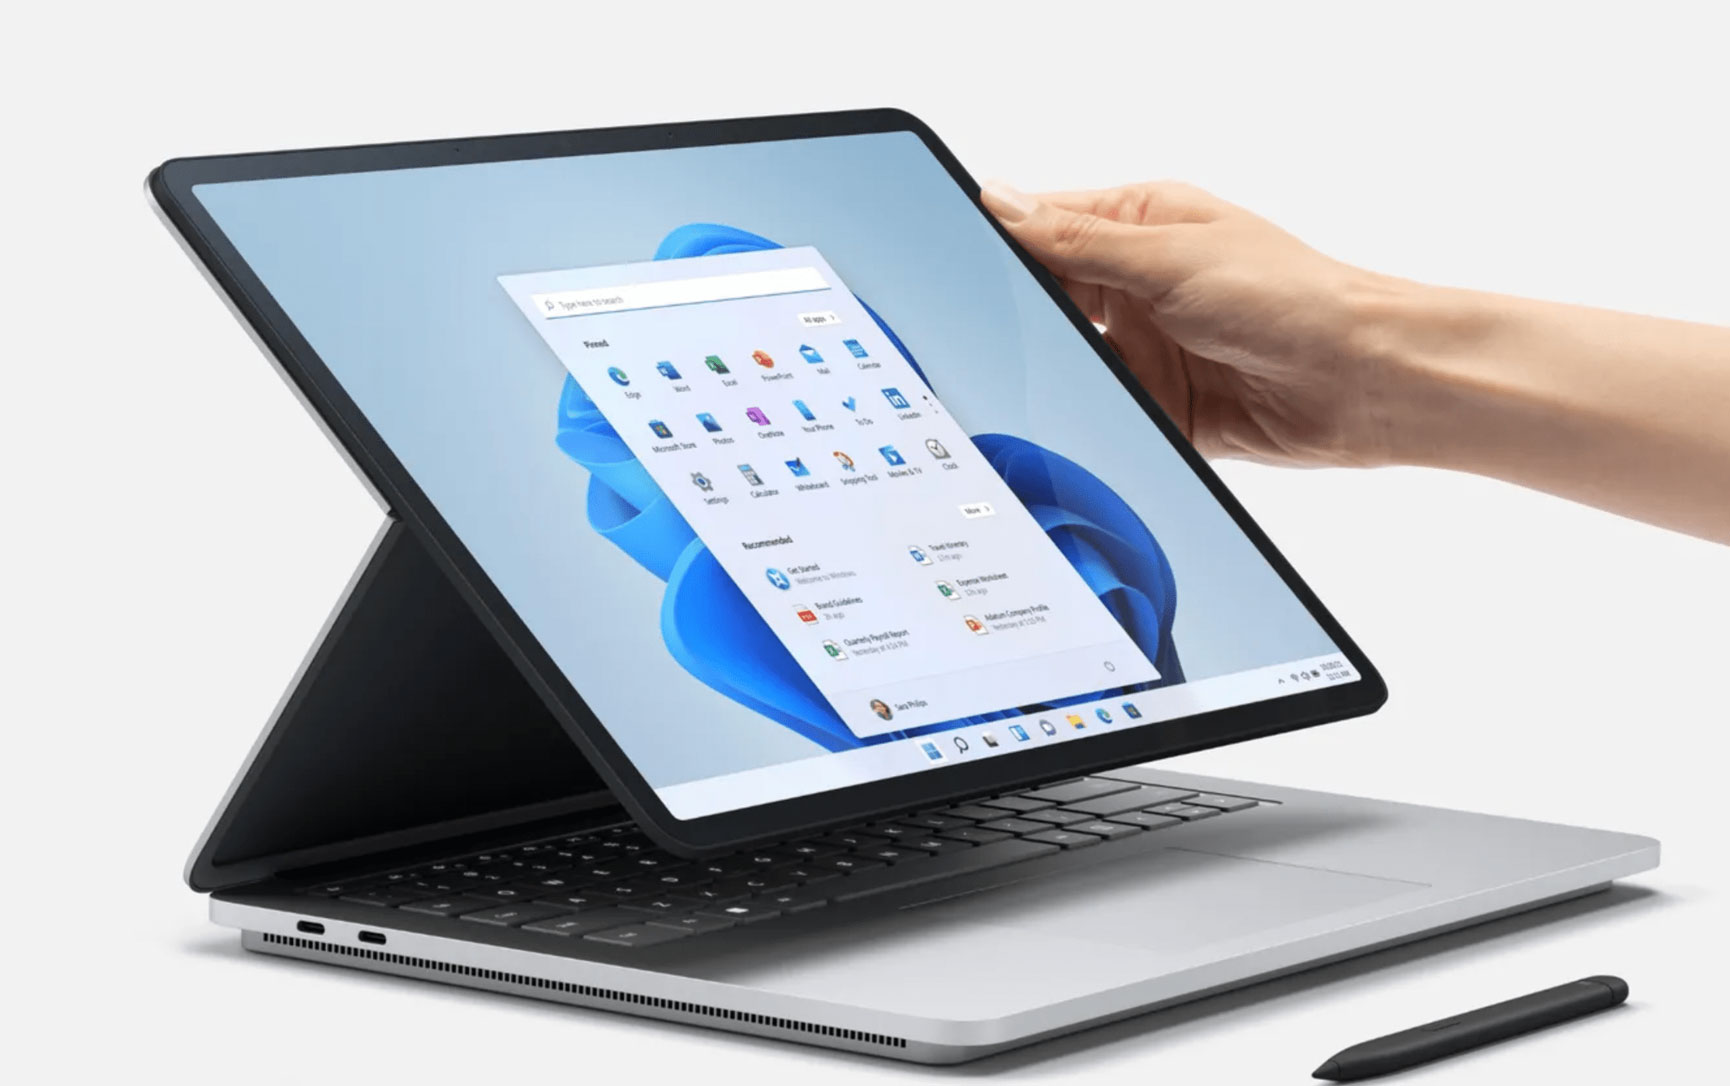 Microsoft unveils new Surface with Magic Keyboard-like design, 120Hz refresh rate, and more